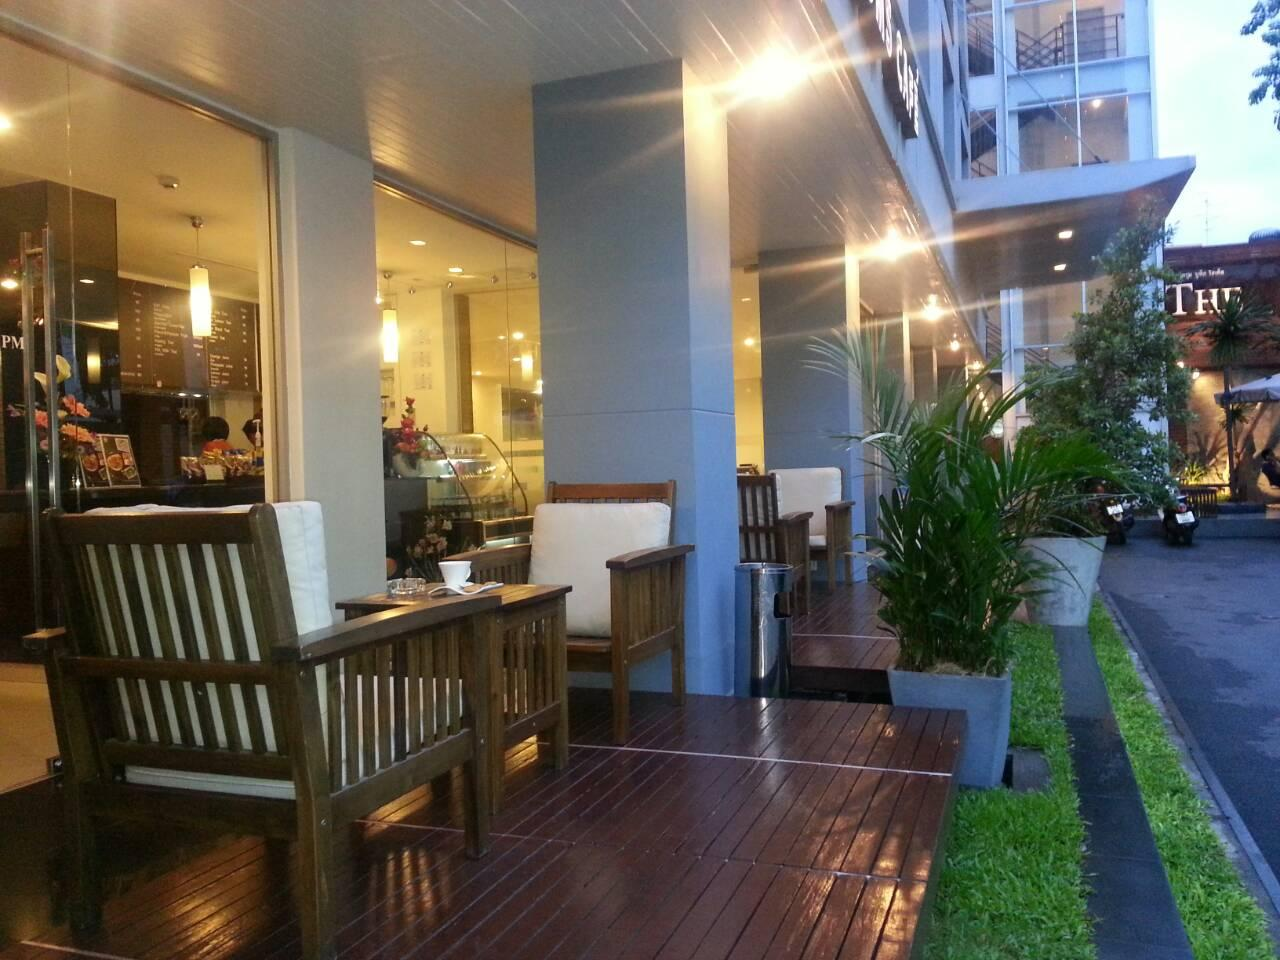 The Bedrooms Boutique Hotel - Hotell och Boende i Thailand i Asien